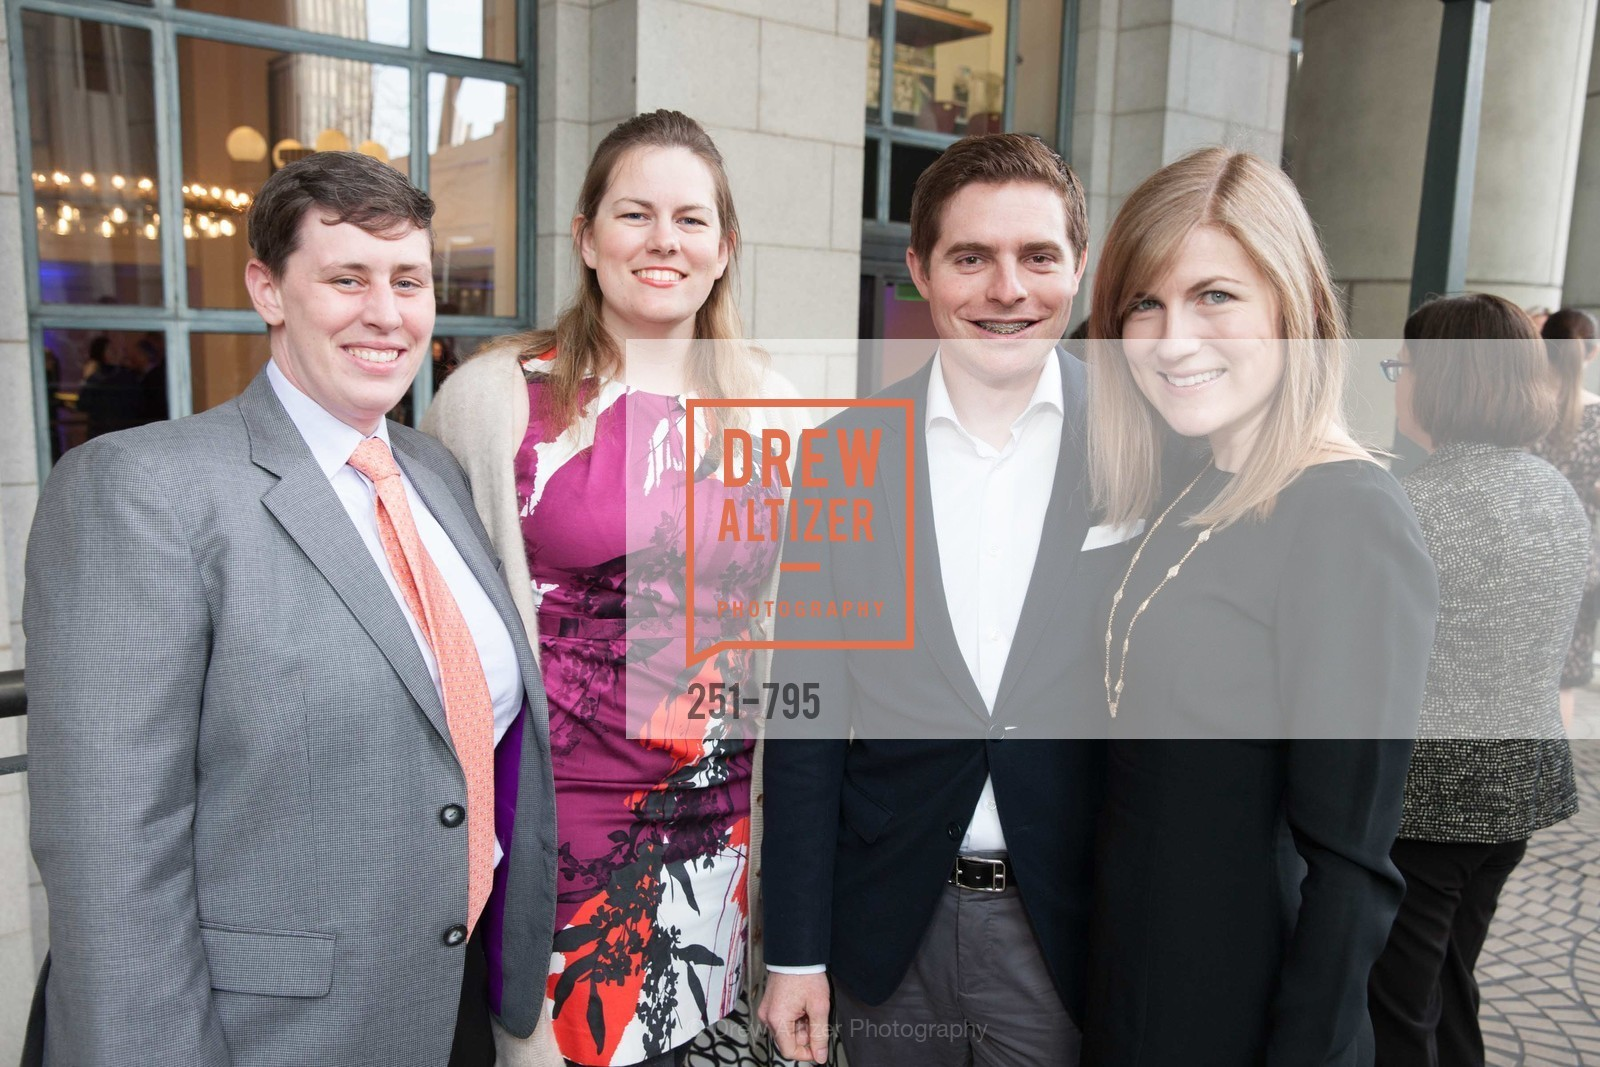 Jessica Milligan, Claire Milligan, Drew Wall, Lindsey Milligan Wall, COMPASS FAMILY SERVICES Annual Spring Benefit:  Every Family Needs A Home, US, April 23rd, 2015,Drew Altizer, Drew Altizer Photography, full-service agency, private events, San Francisco photographer, photographer california